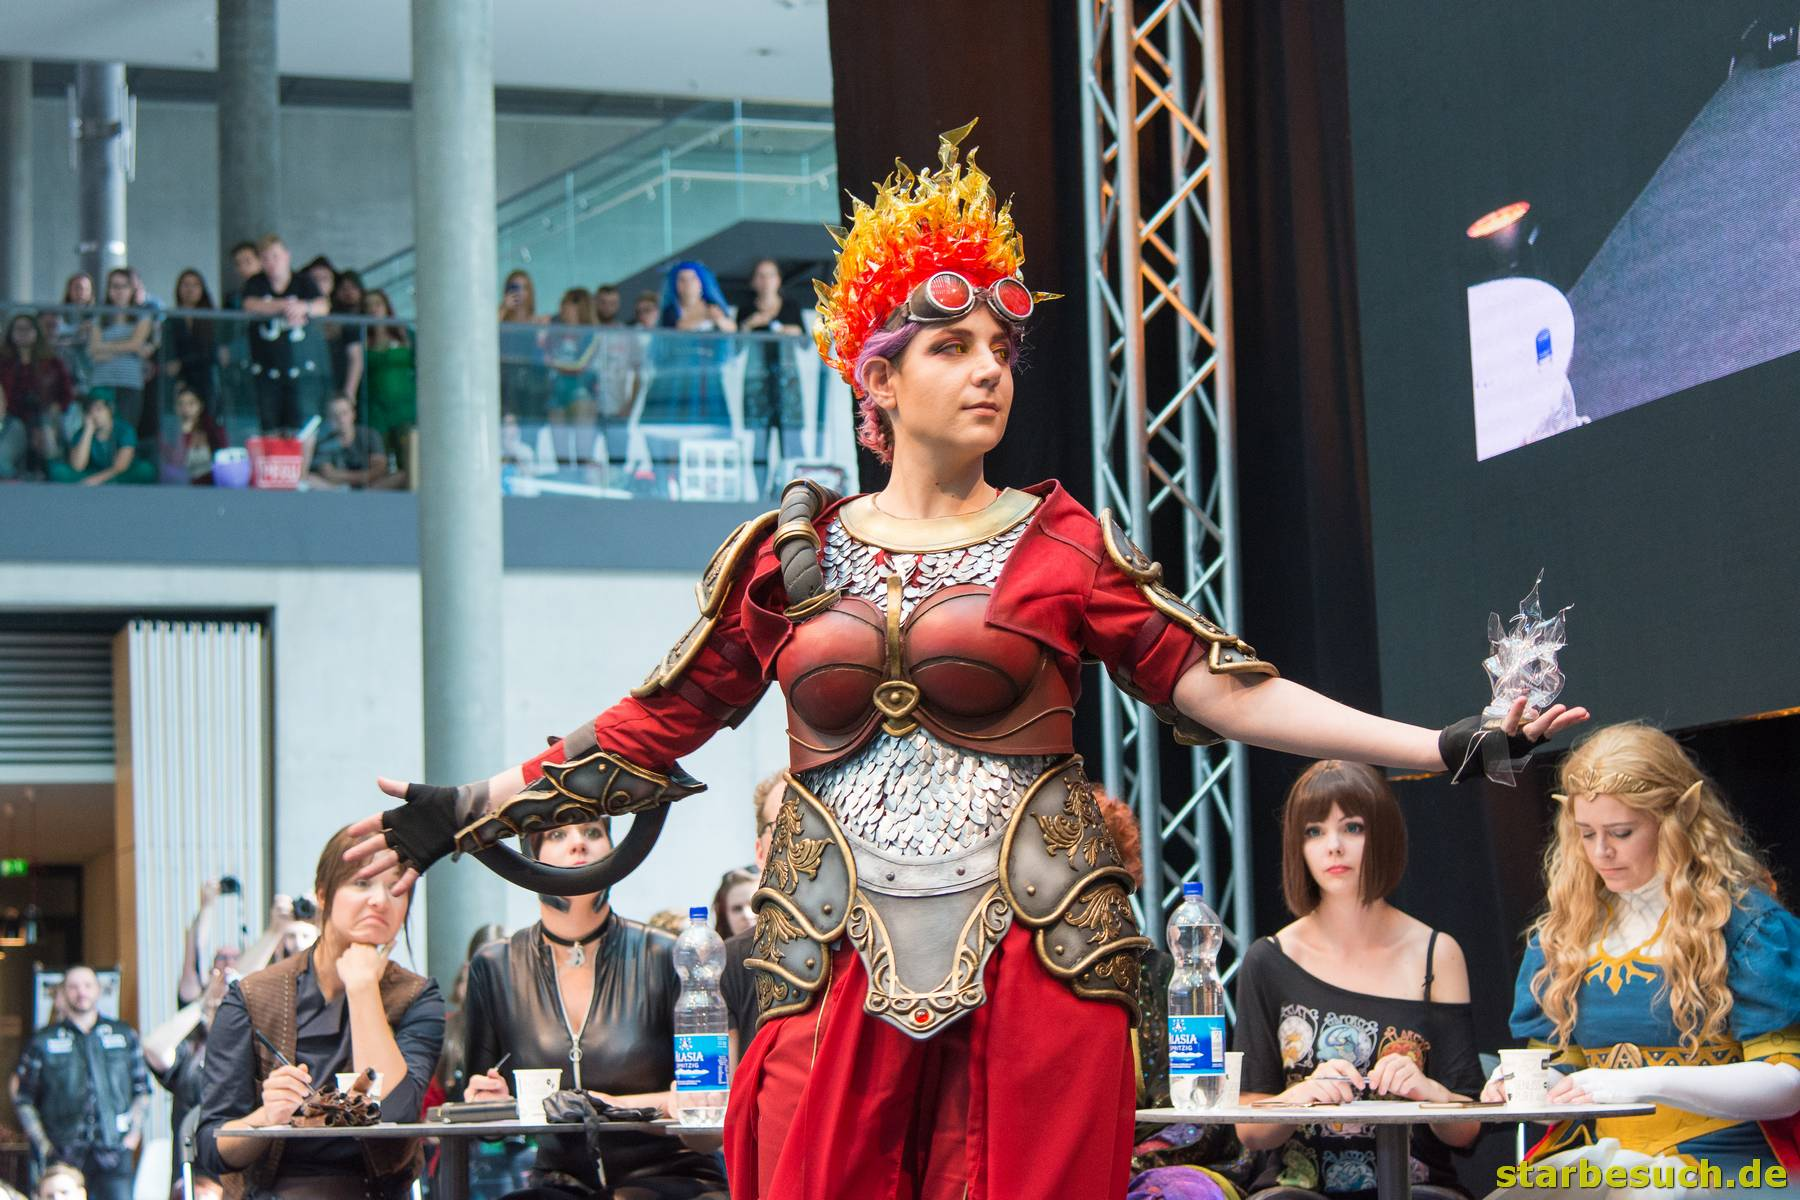 July 1st 2017. Stuttgart, Germany. Cosplay contest at Comic-Con Stuttgart. Comic-Con Stuttgart invites fans and cos-players to meet celebrities and comic artists in panels, Q&As, photo and signing sessions